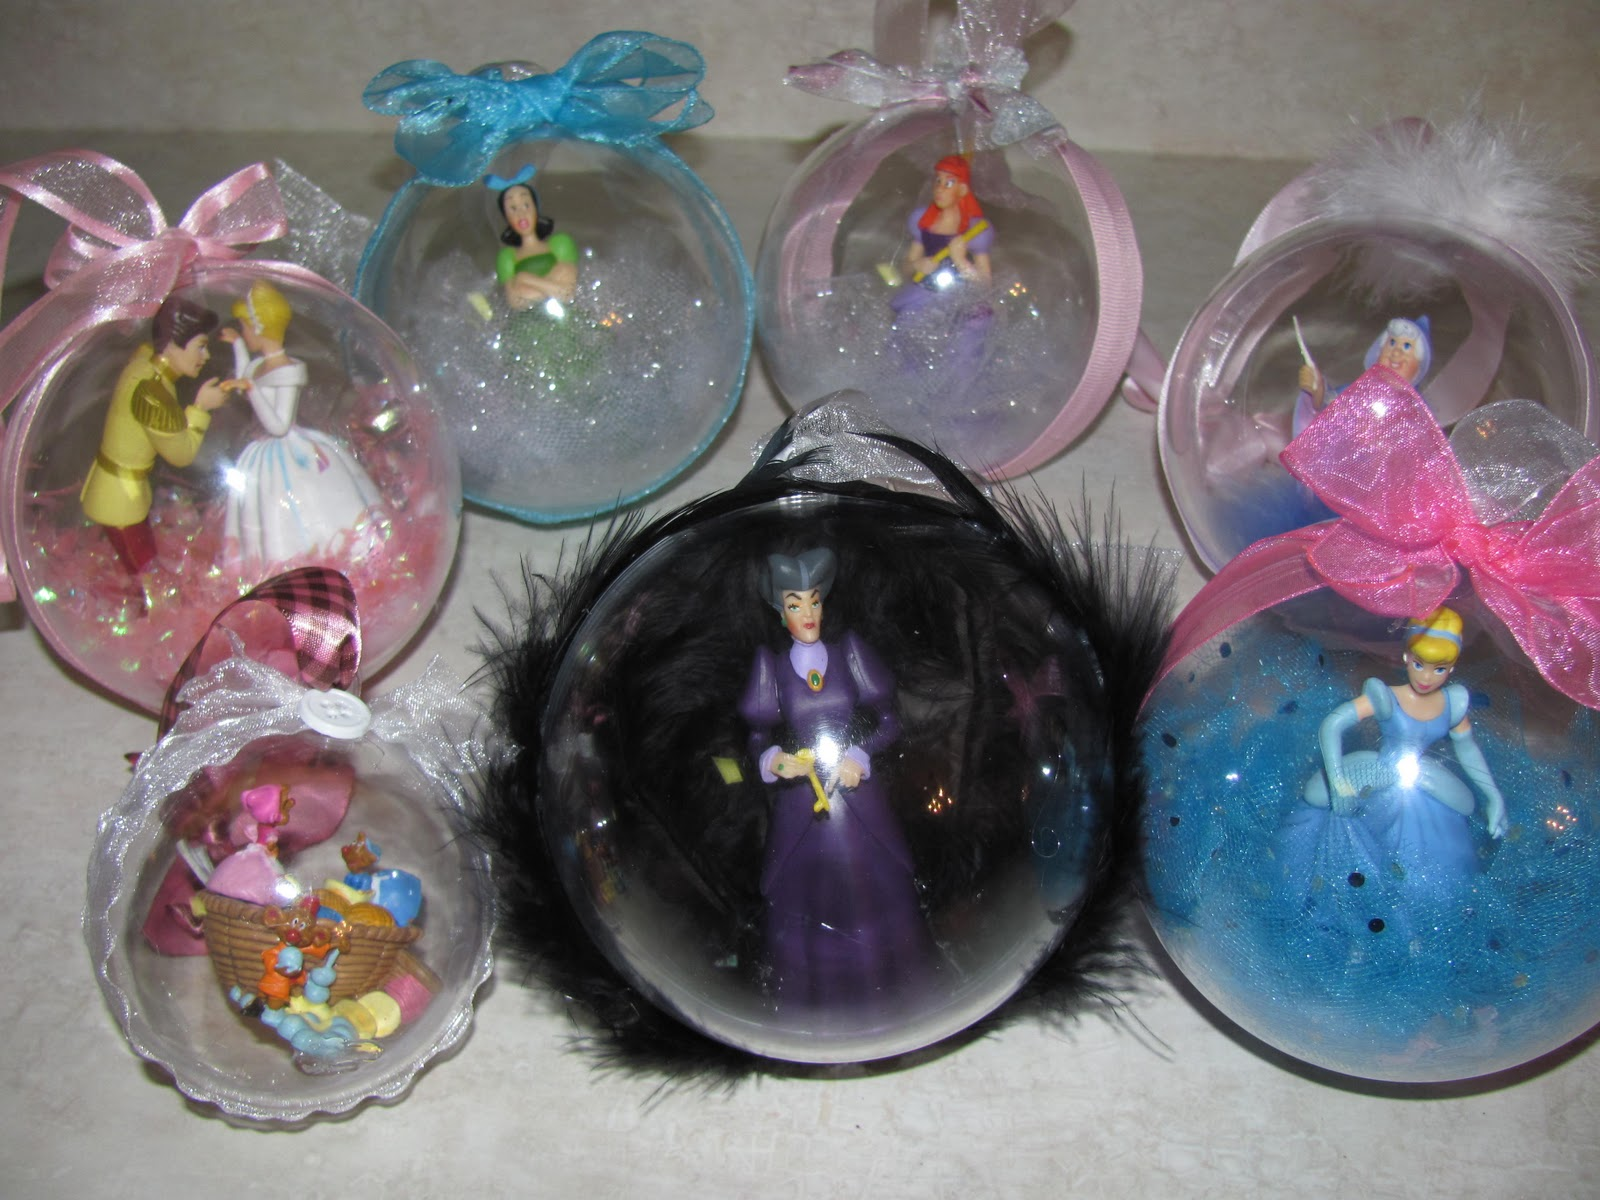 20 diy disney ornaments 20 diy disney ornaments 12 03 2014